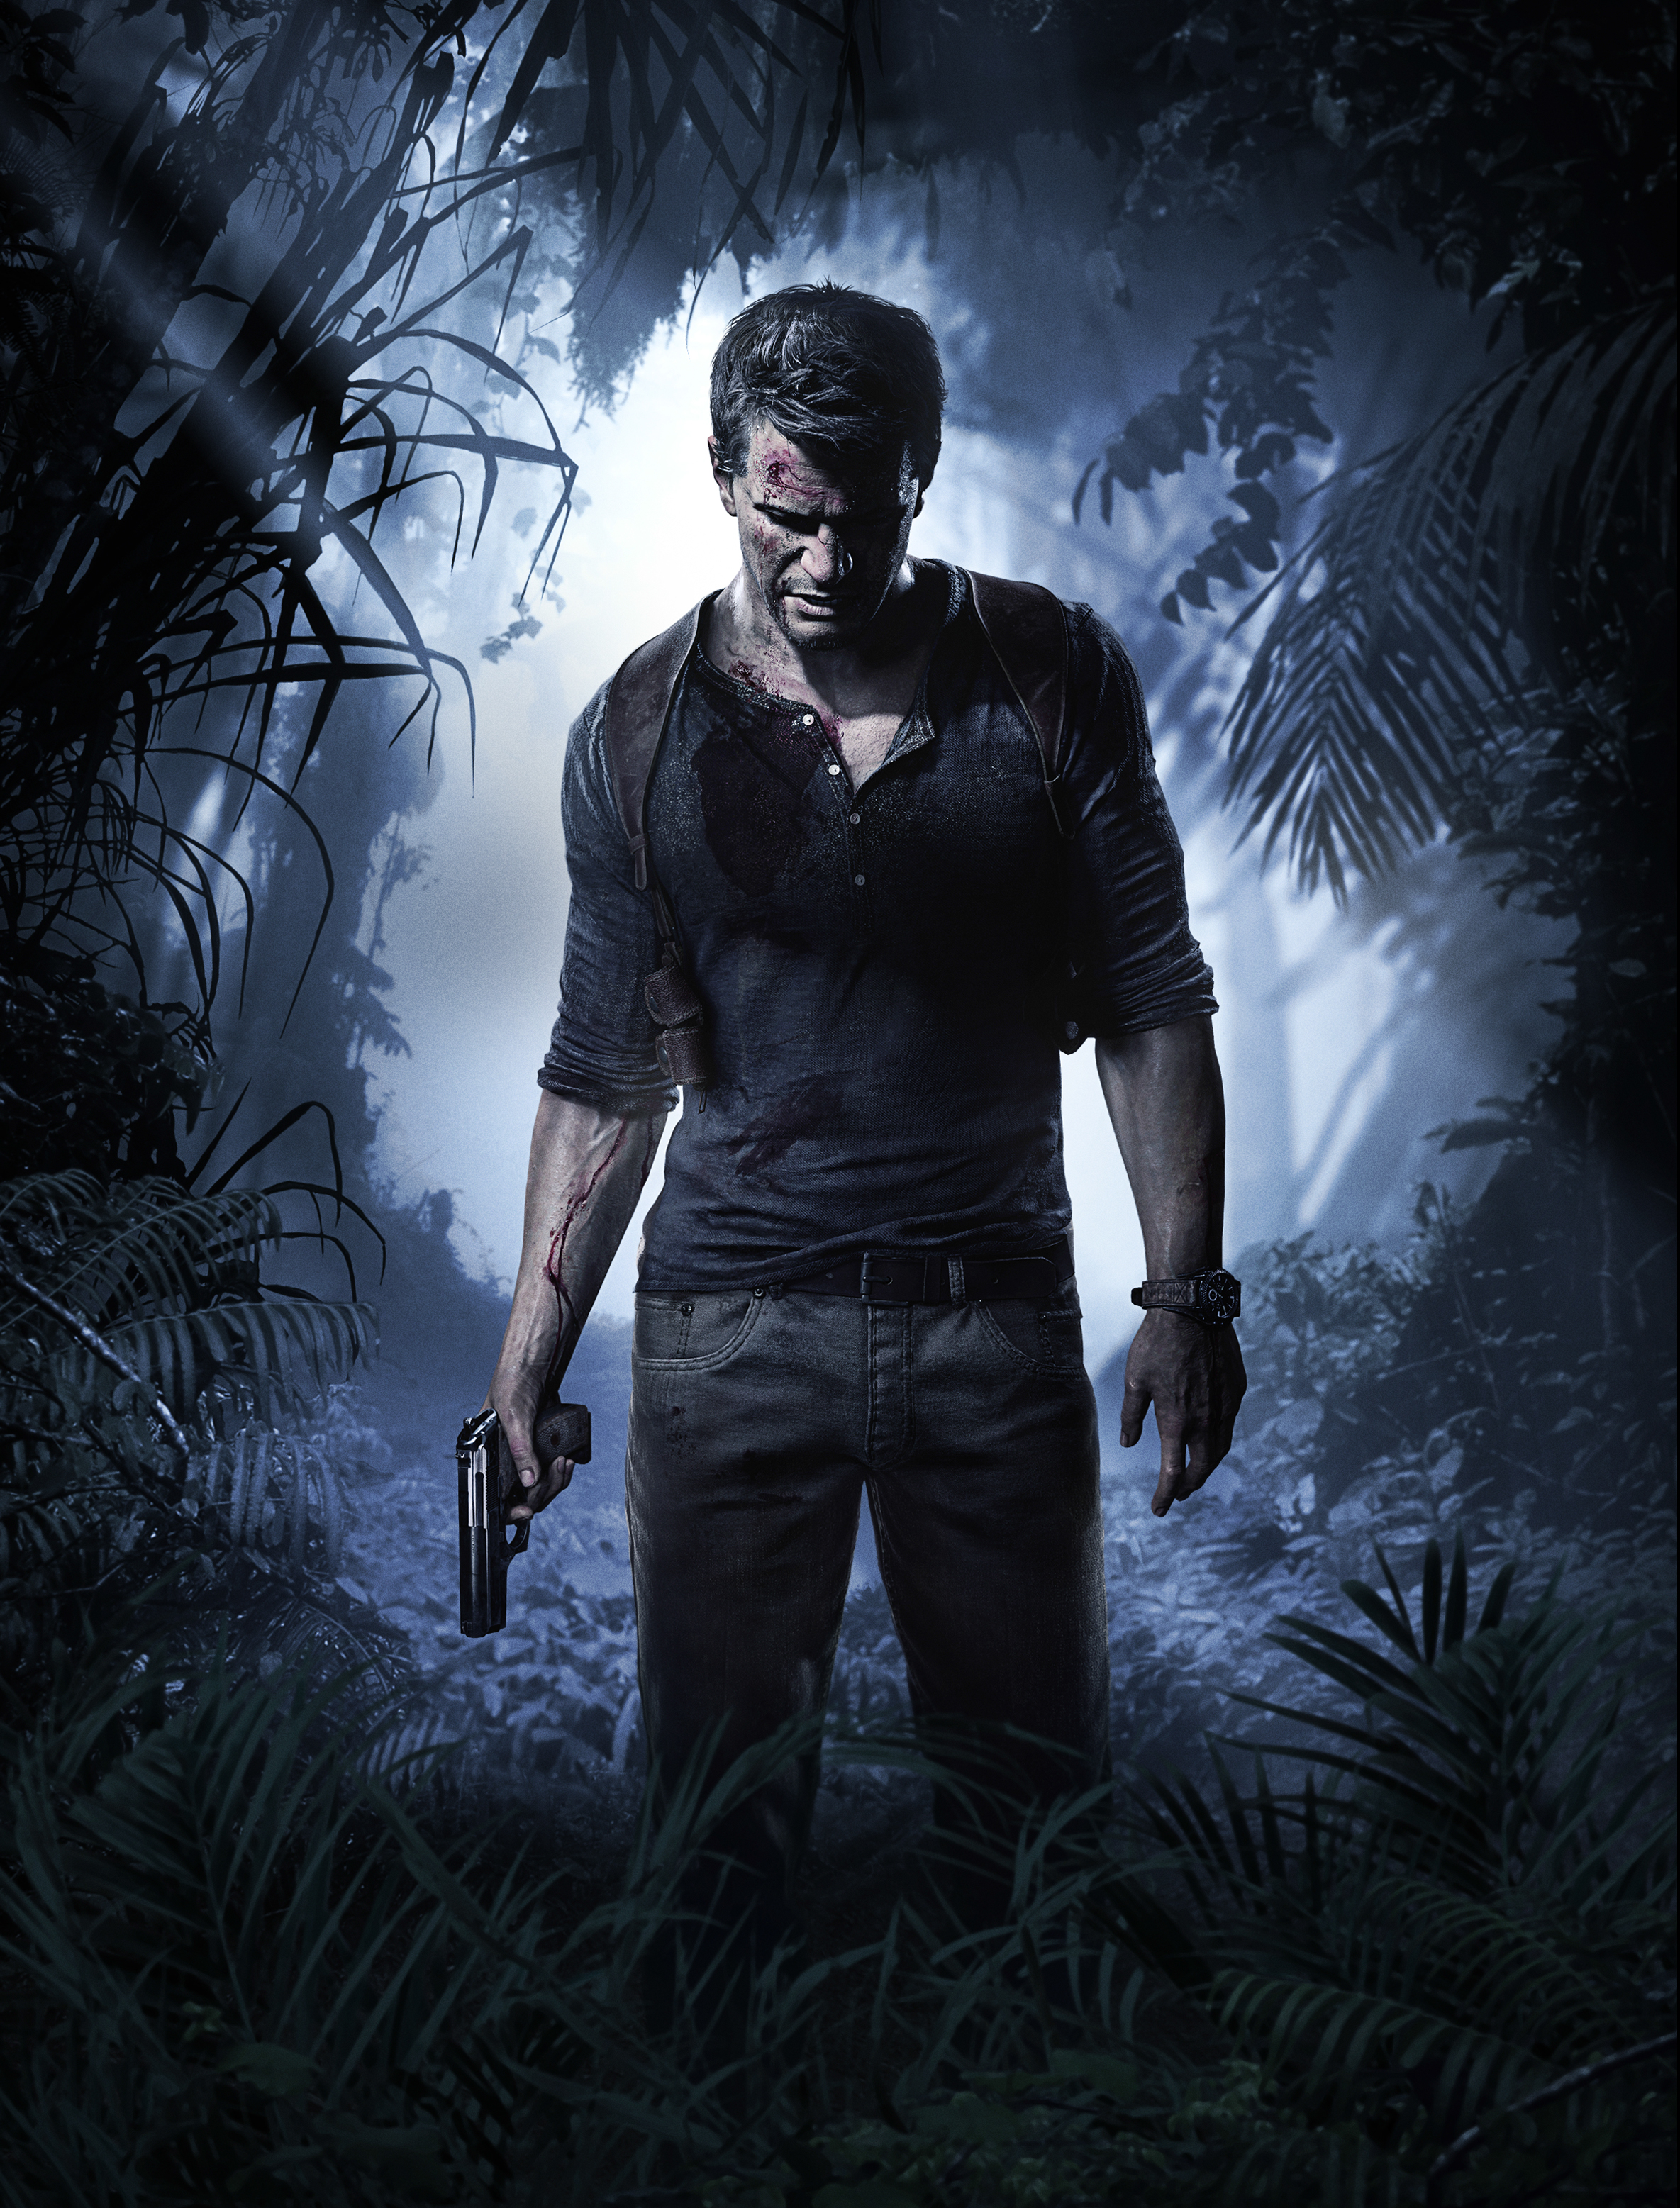 Uncharted 4 Cover Art Reportedly Found, Other Images Released